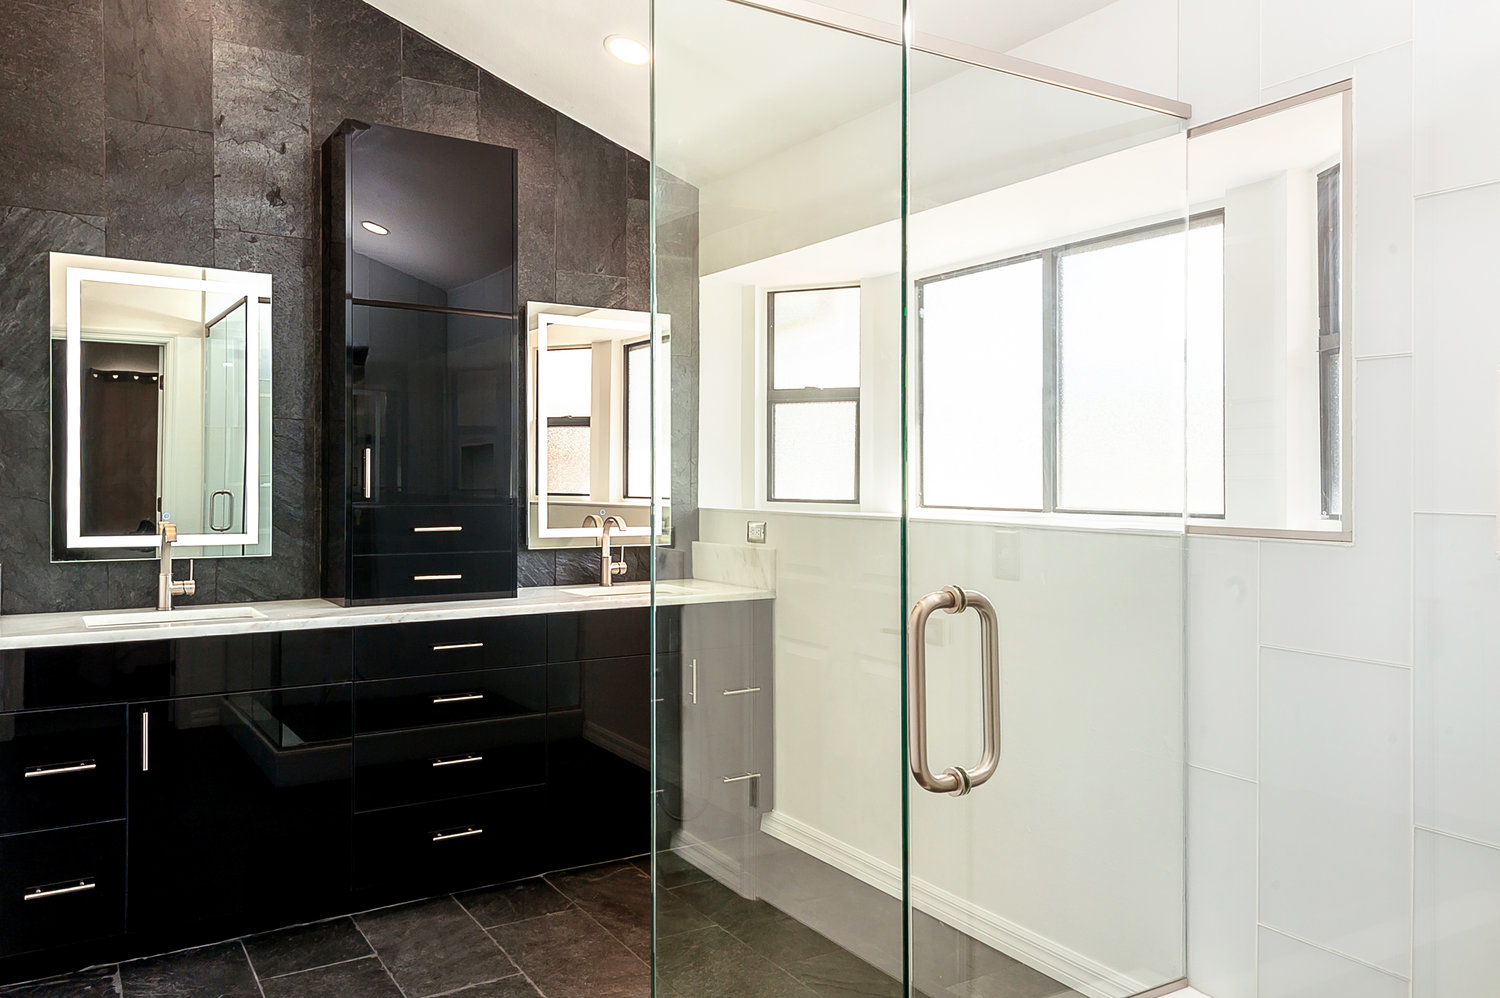 Ultra Modern Bathroom Remodel In Tampa DCI HOME IMPROVEMENTS - Bathroom remodel tampa